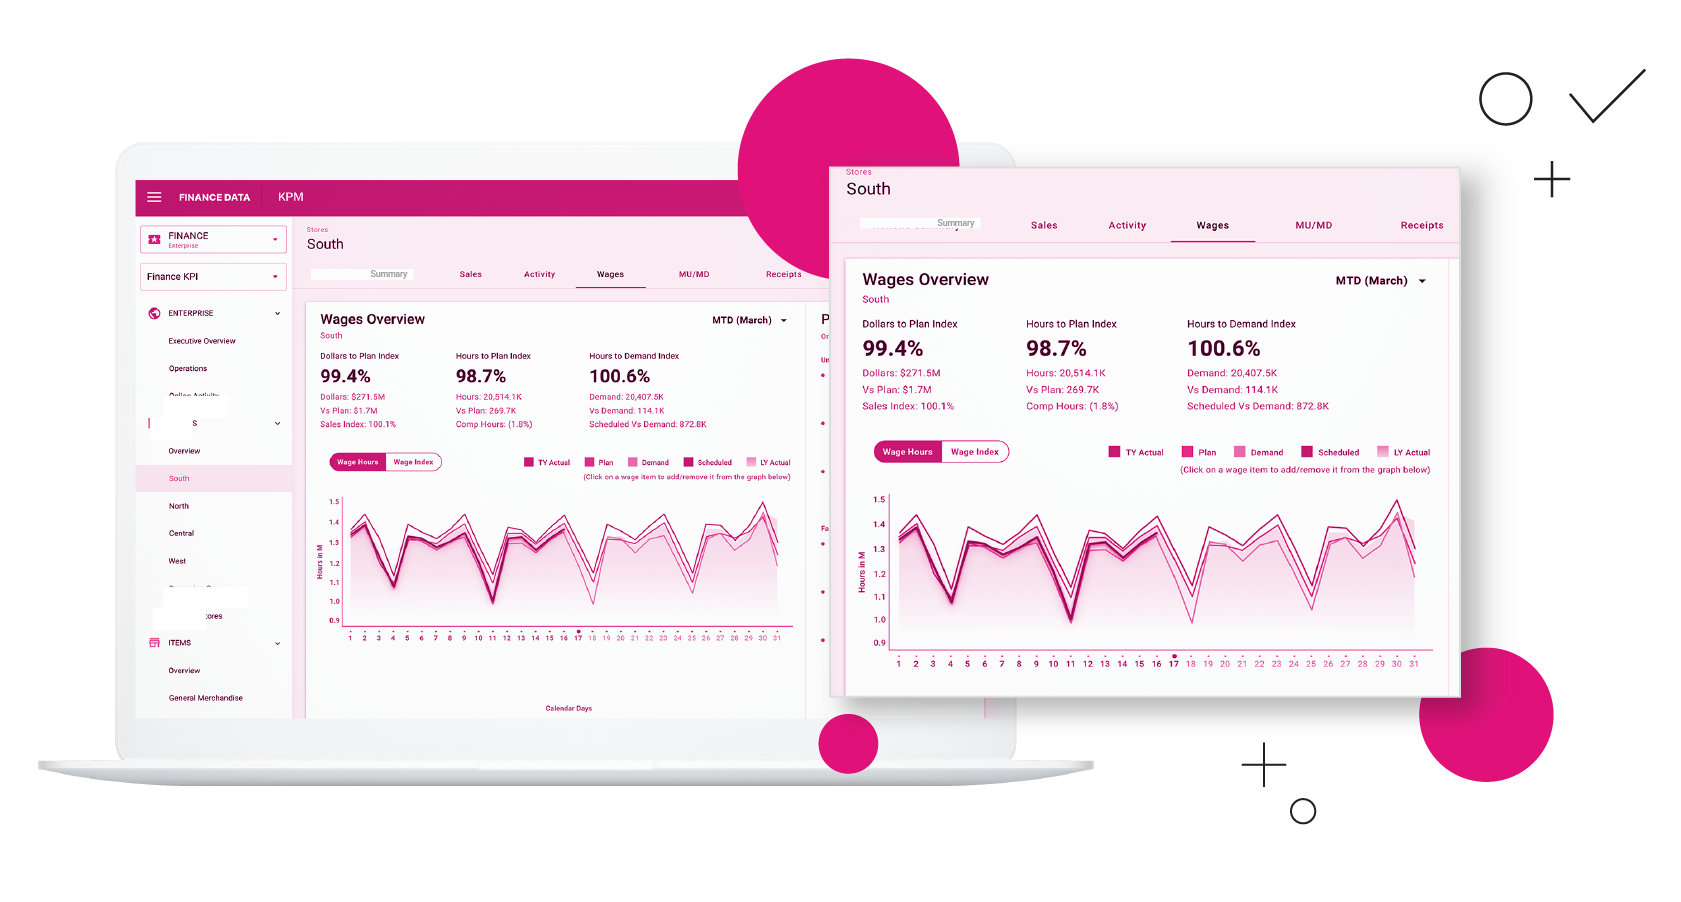 financial data dashboard, screen grab of product developed